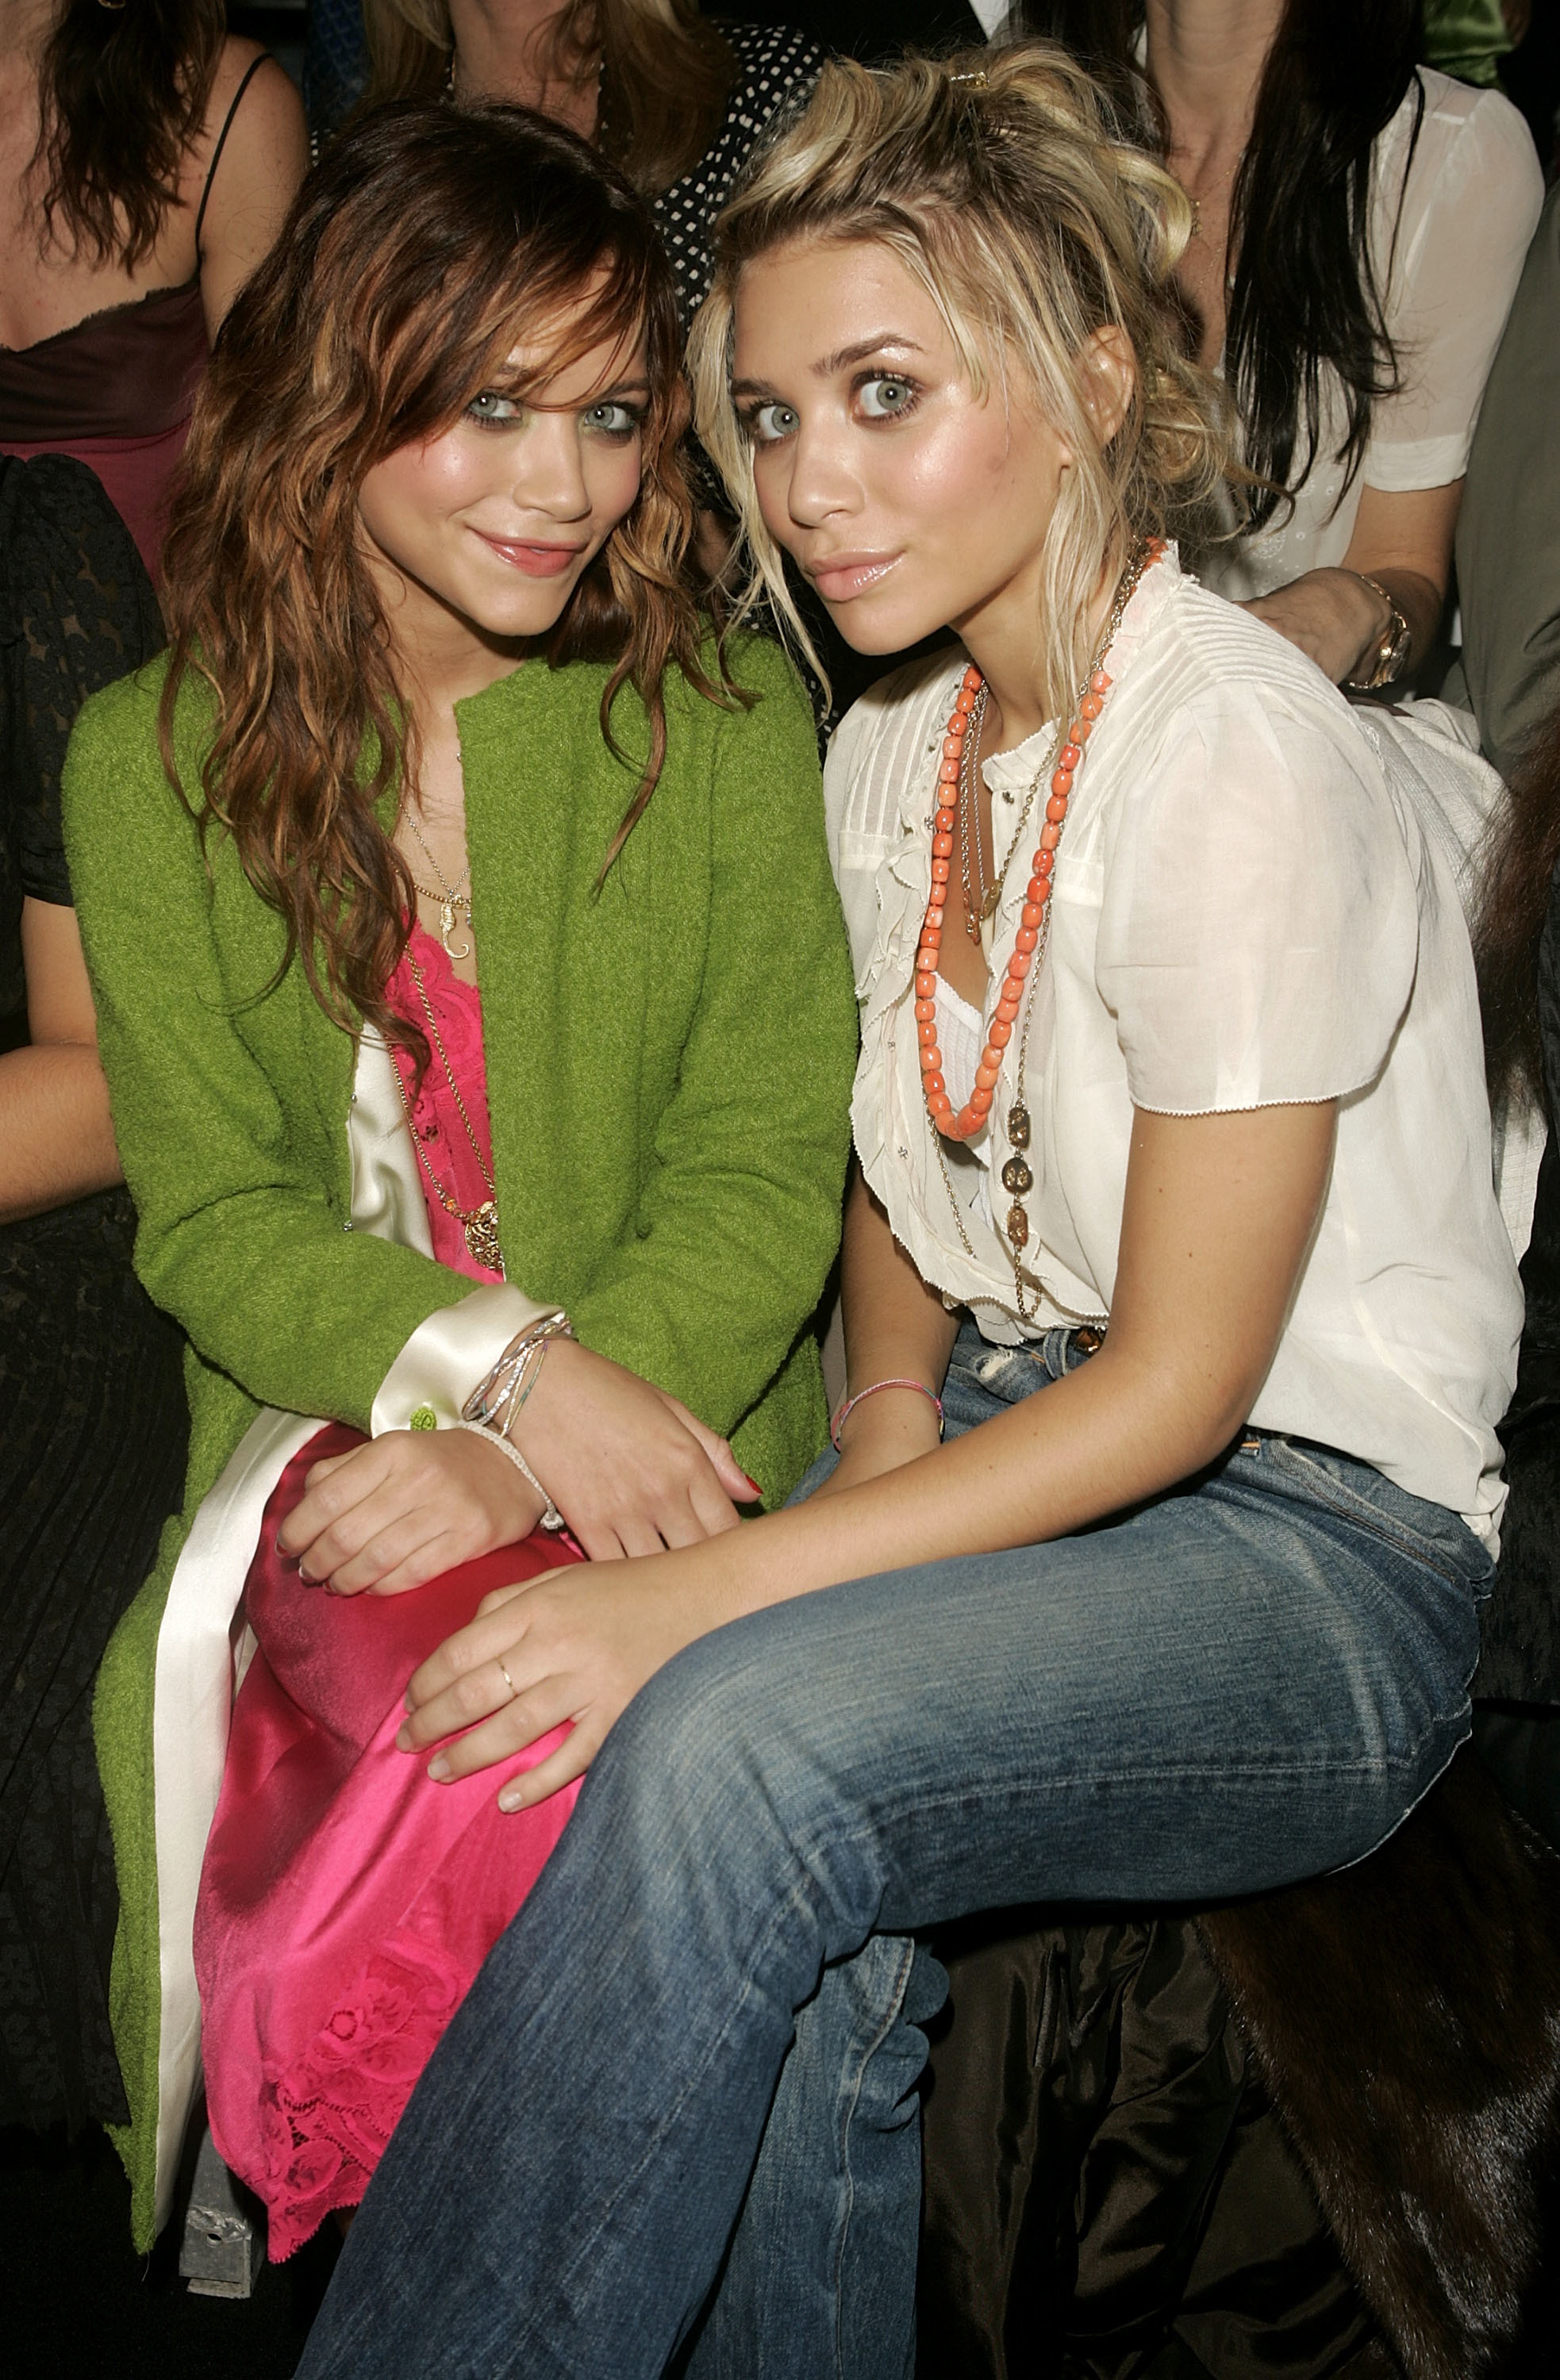 Mary Kate Olsen and Ashley Olsen attend the Marc Jacobs show during the Olympus Fashion Week Spring 2005 in New York City on Sept. 13, 2004.